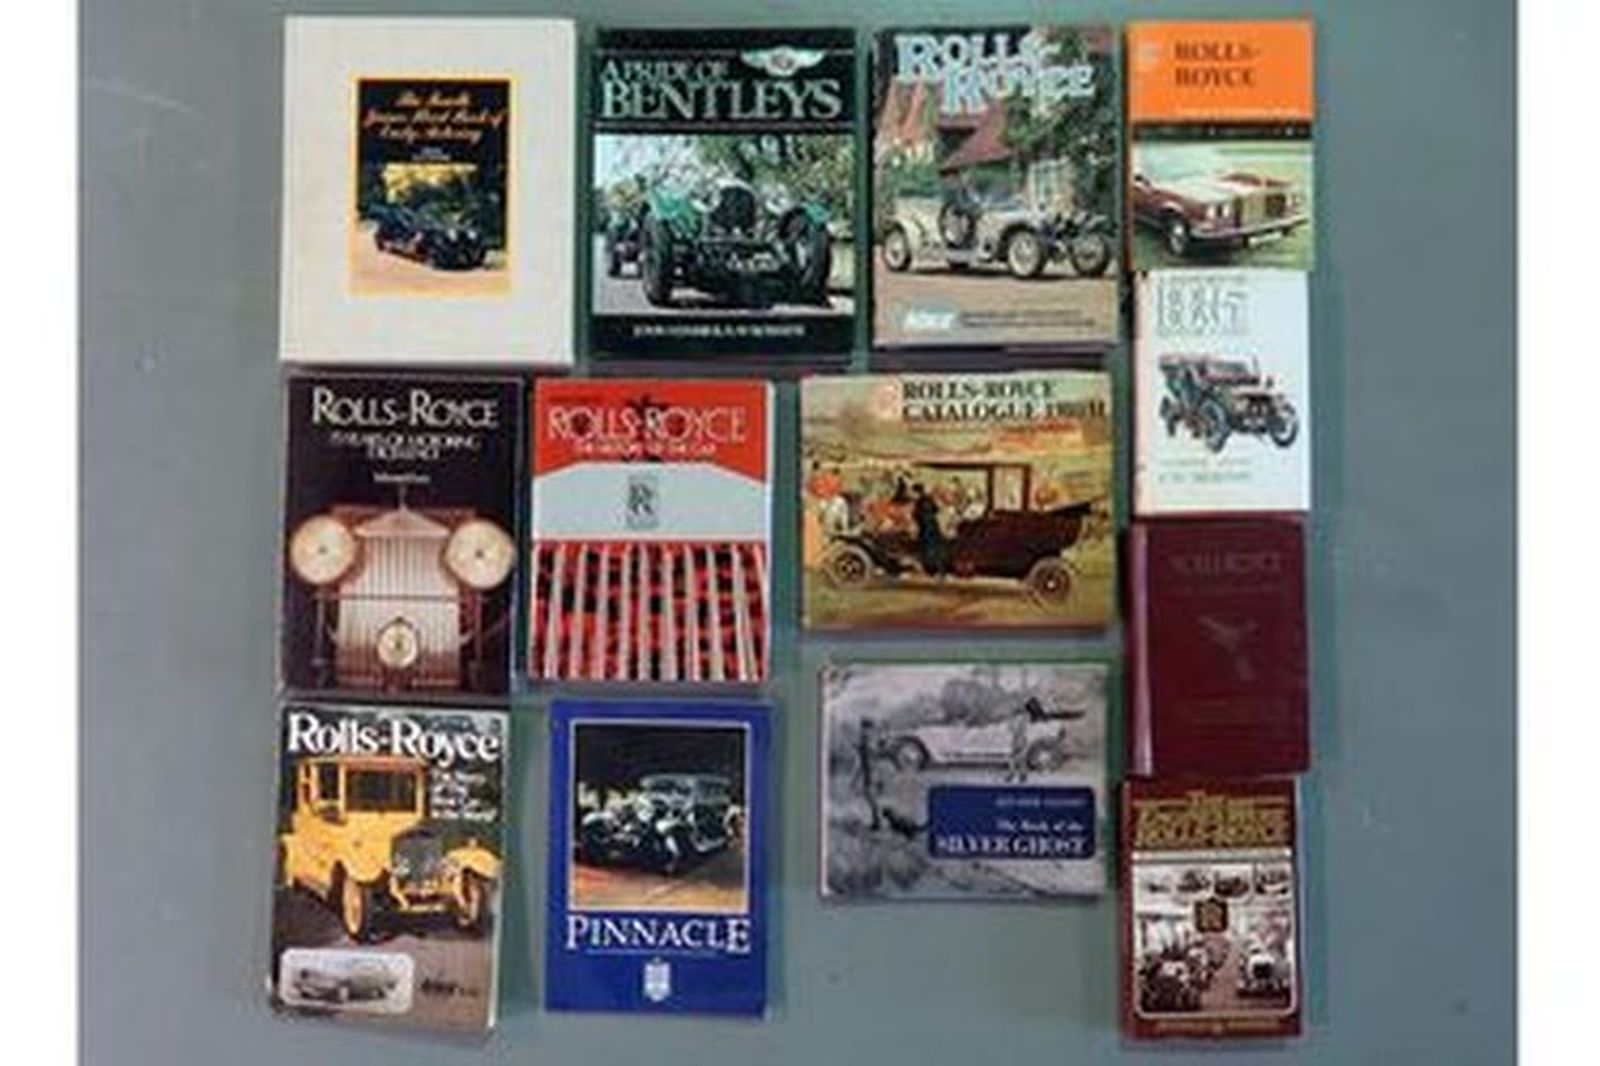 Books - Rolls-Royce Collection x 13